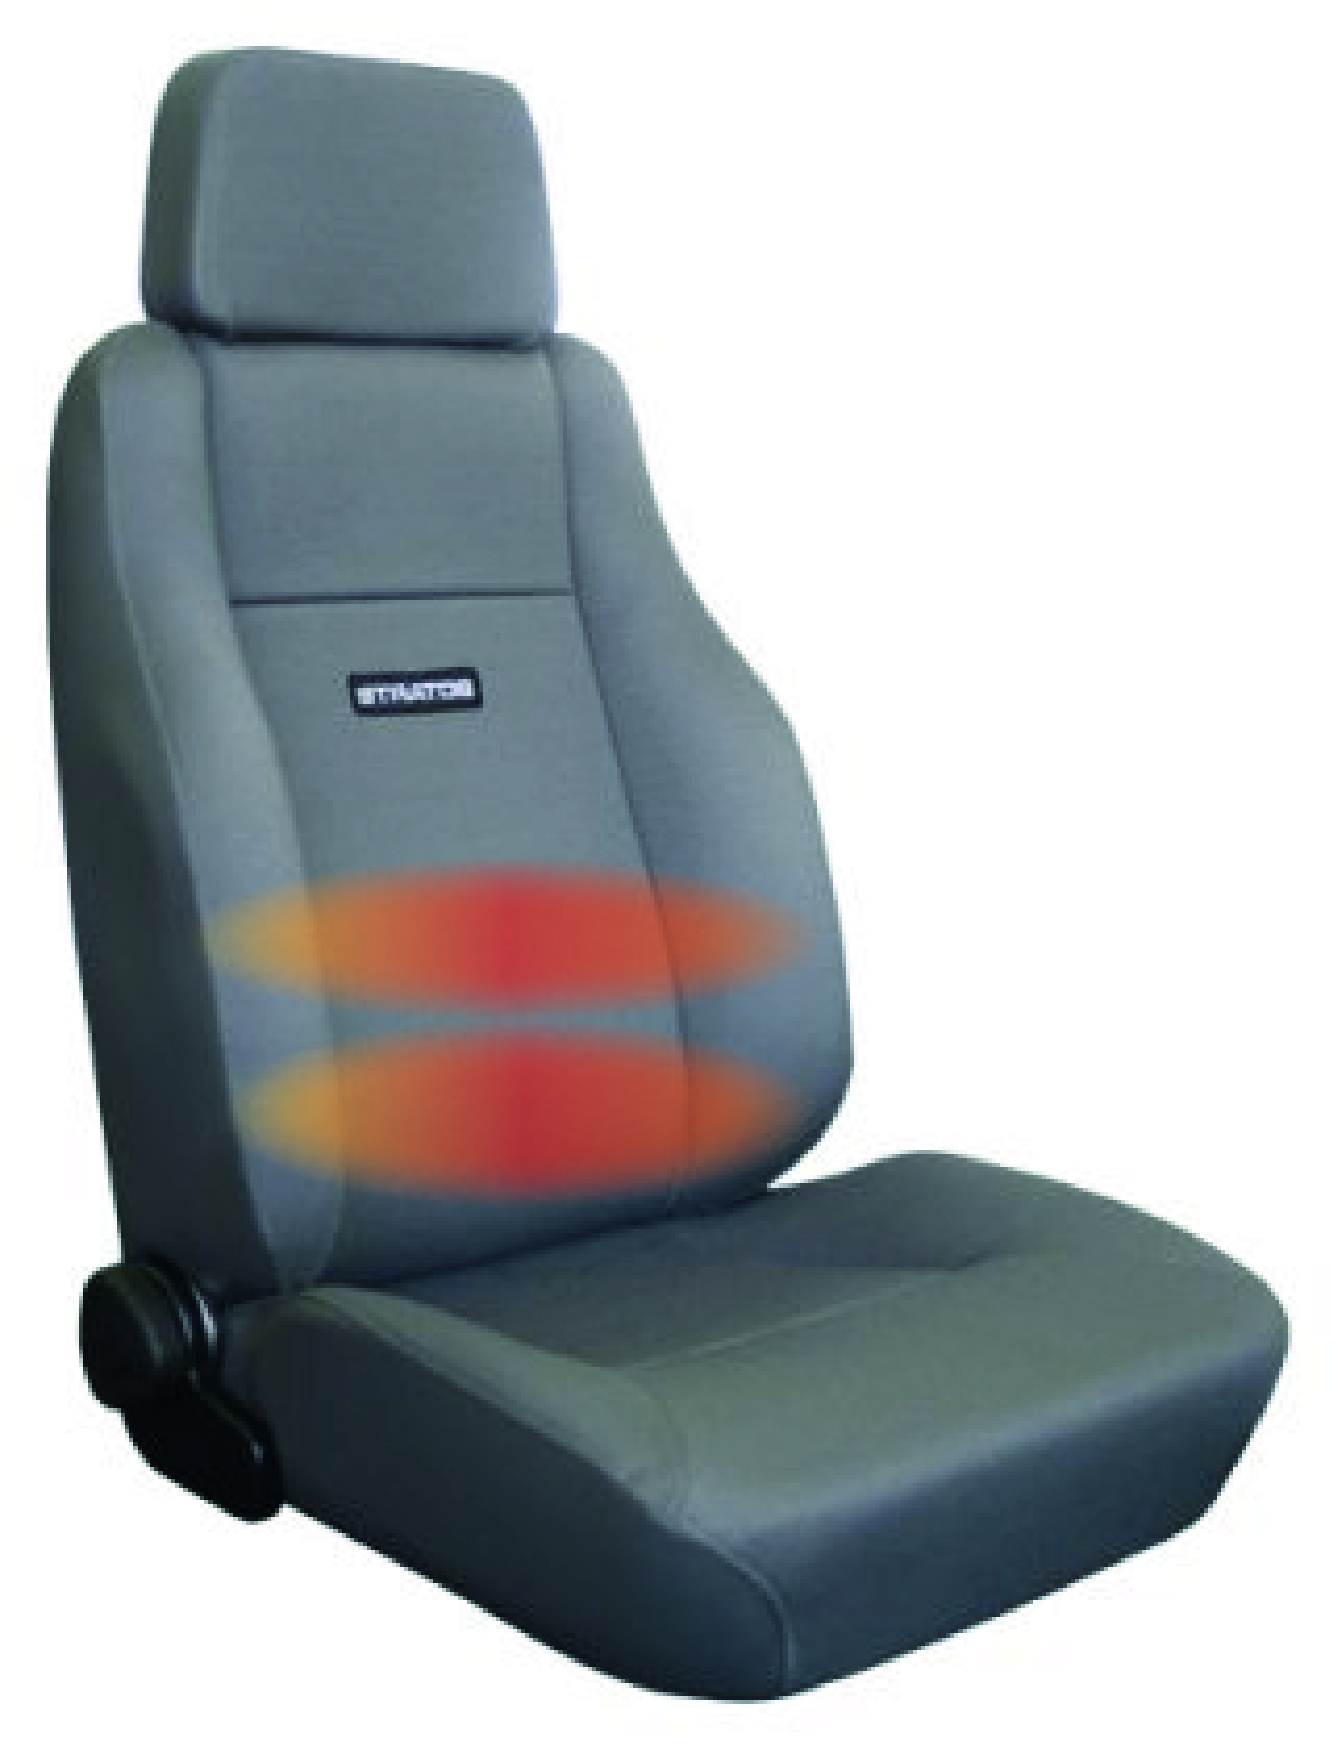 seat heater backrest